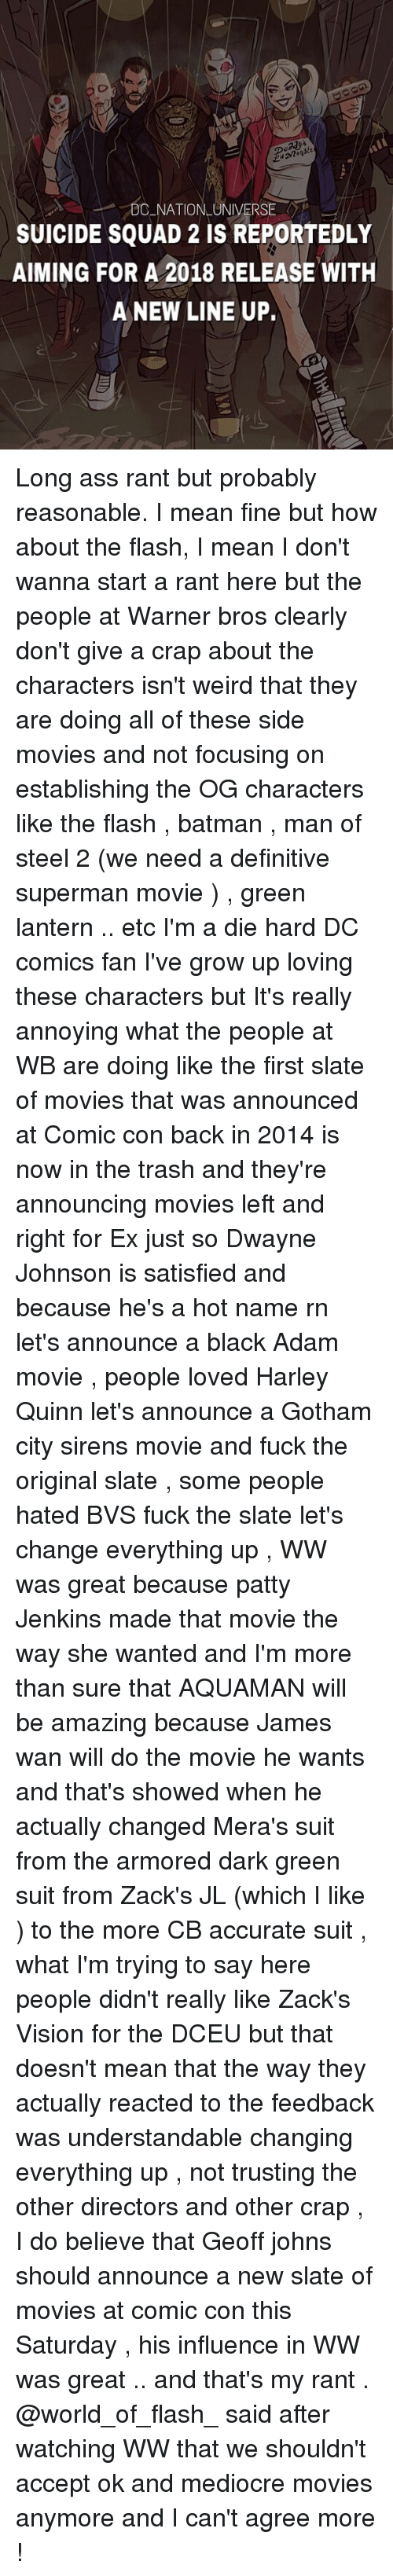 Ass, Batman, and Dwayne Johnson: . DC.NATION-UNIVERSE  SUICIDE SQUAD 2 IS REPORTEDLY  AIMING FOR A 2018 RELEASE WITH  A NEW LINE UP. Long ass rant but probably reasonable. I mean fine but how about the flash, I mean I don't wanna start a rant here but the people at Warner bros clearly don't give a crap about the characters isn't weird that they are doing all of these side movies and not focusing on establishing the OG characters like the flash , batman , man of steel 2 (we need a definitive superman movie ) , green lantern .. etc I'm a die hard DC comics fan I've grow up loving these characters but It's really annoying what the people at WB are doing like the first slate of movies that was announced at Comic con back in 2014 is now in the trash and they're announcing movies left and right for Ex just so Dwayne Johnson is satisfied and because he's a hot name rn let's announce a black Adam movie , people loved Harley Quinn let's announce a Gotham city sirens movie and fuck the original slate , some people hated BVS fuck the slate let's change everything up , WW was great because patty Jenkins made that movie the way she wanted and I'm more than sure that AQUAMAN will be amazing because James wan will do the movie he wants and that's showed when he actually changed Mera's suit from the armored dark green suit from Zack's JL (which I like ) to the more CB accurate suit , what I'm trying to say here people didn't really like Zack's Vision for the DCEU but that doesn't mean that the way they actually reacted to the feedback was understandable changing everything up , not trusting the other directors and other crap , I do believe that Geoff johns should announce a new slate of movies at comic con this Saturday , his influence in WW was great .. and that's my rant . @world_of_flash_ said after watching WW that we shouldn't accept ok and mediocre movies anymore and I can't agree more !